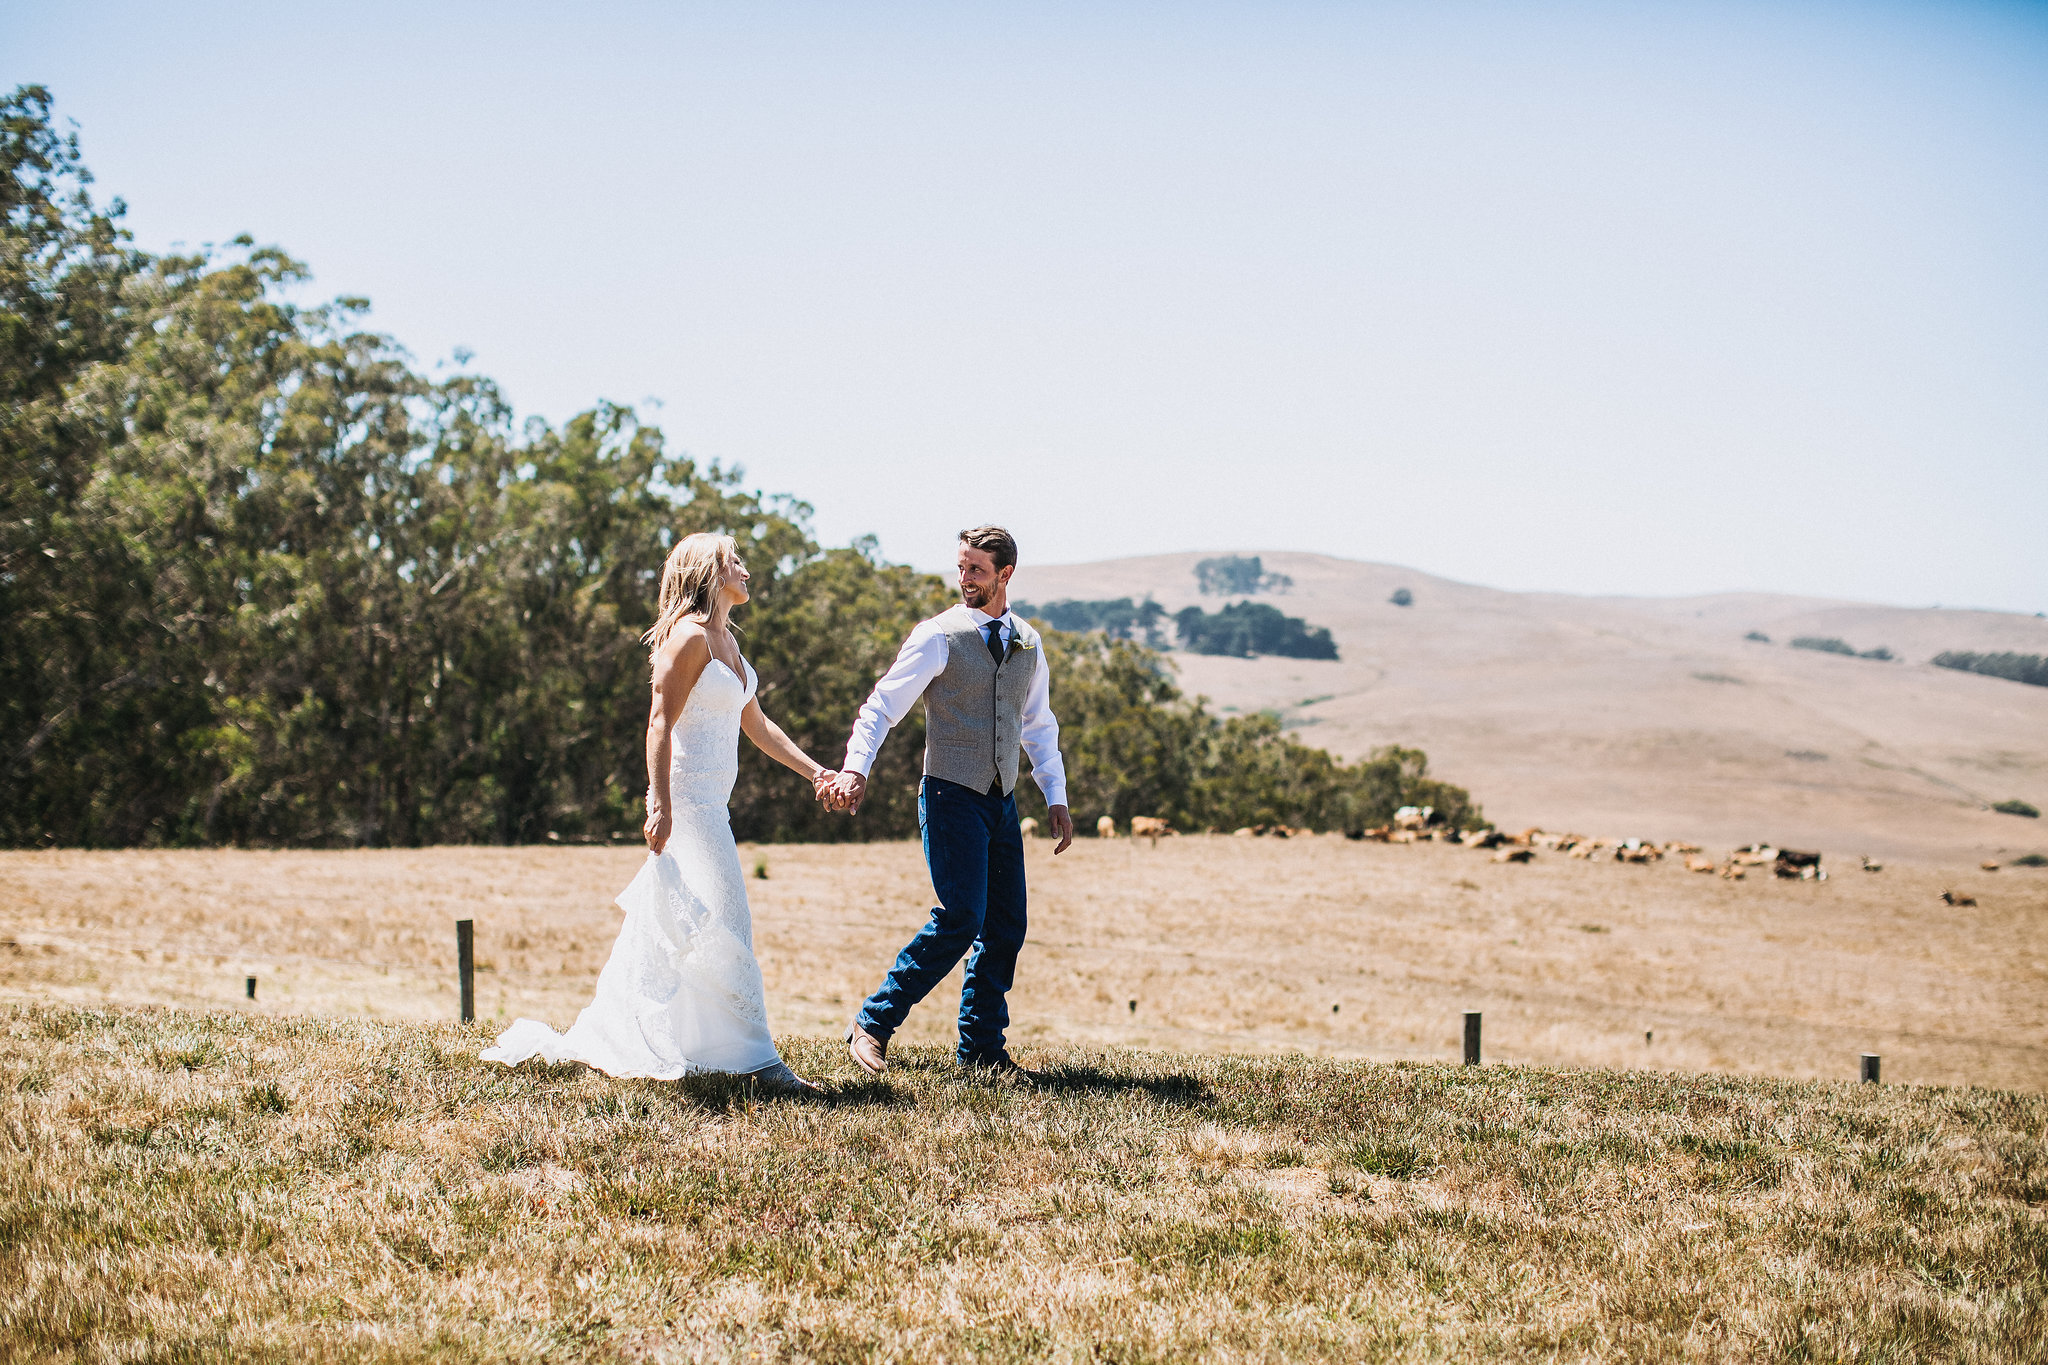 Barn_Barnyard_wedding_Venue_for_rent_Rental_dillion_beach_petaluma_wine_Country_Best_north_Bay_san_Fran_94999_94955.jpg